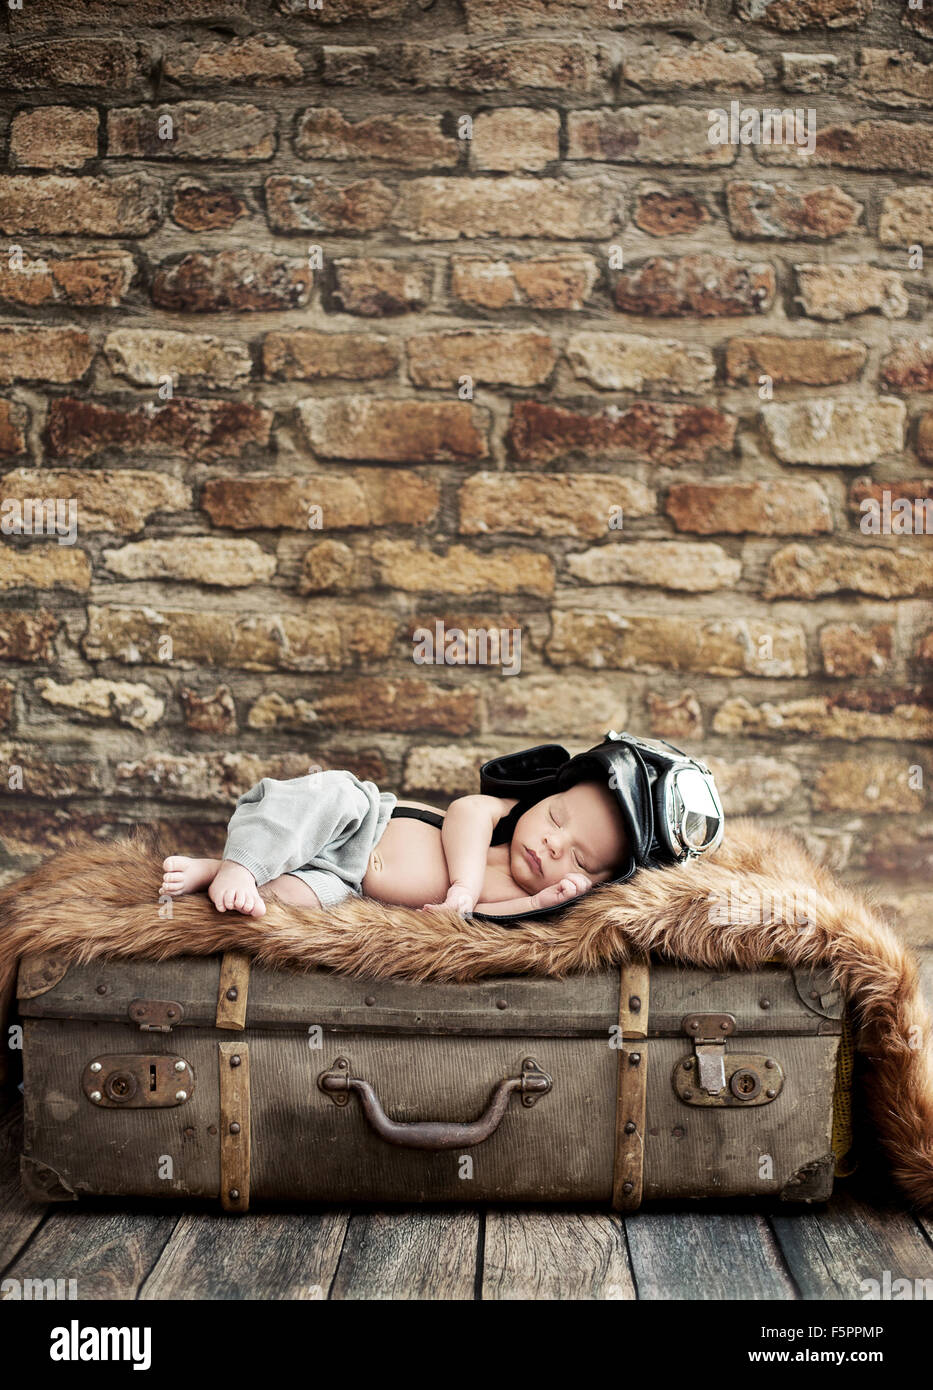 Little cute pilot sleeping on the suitcase - Stock Image